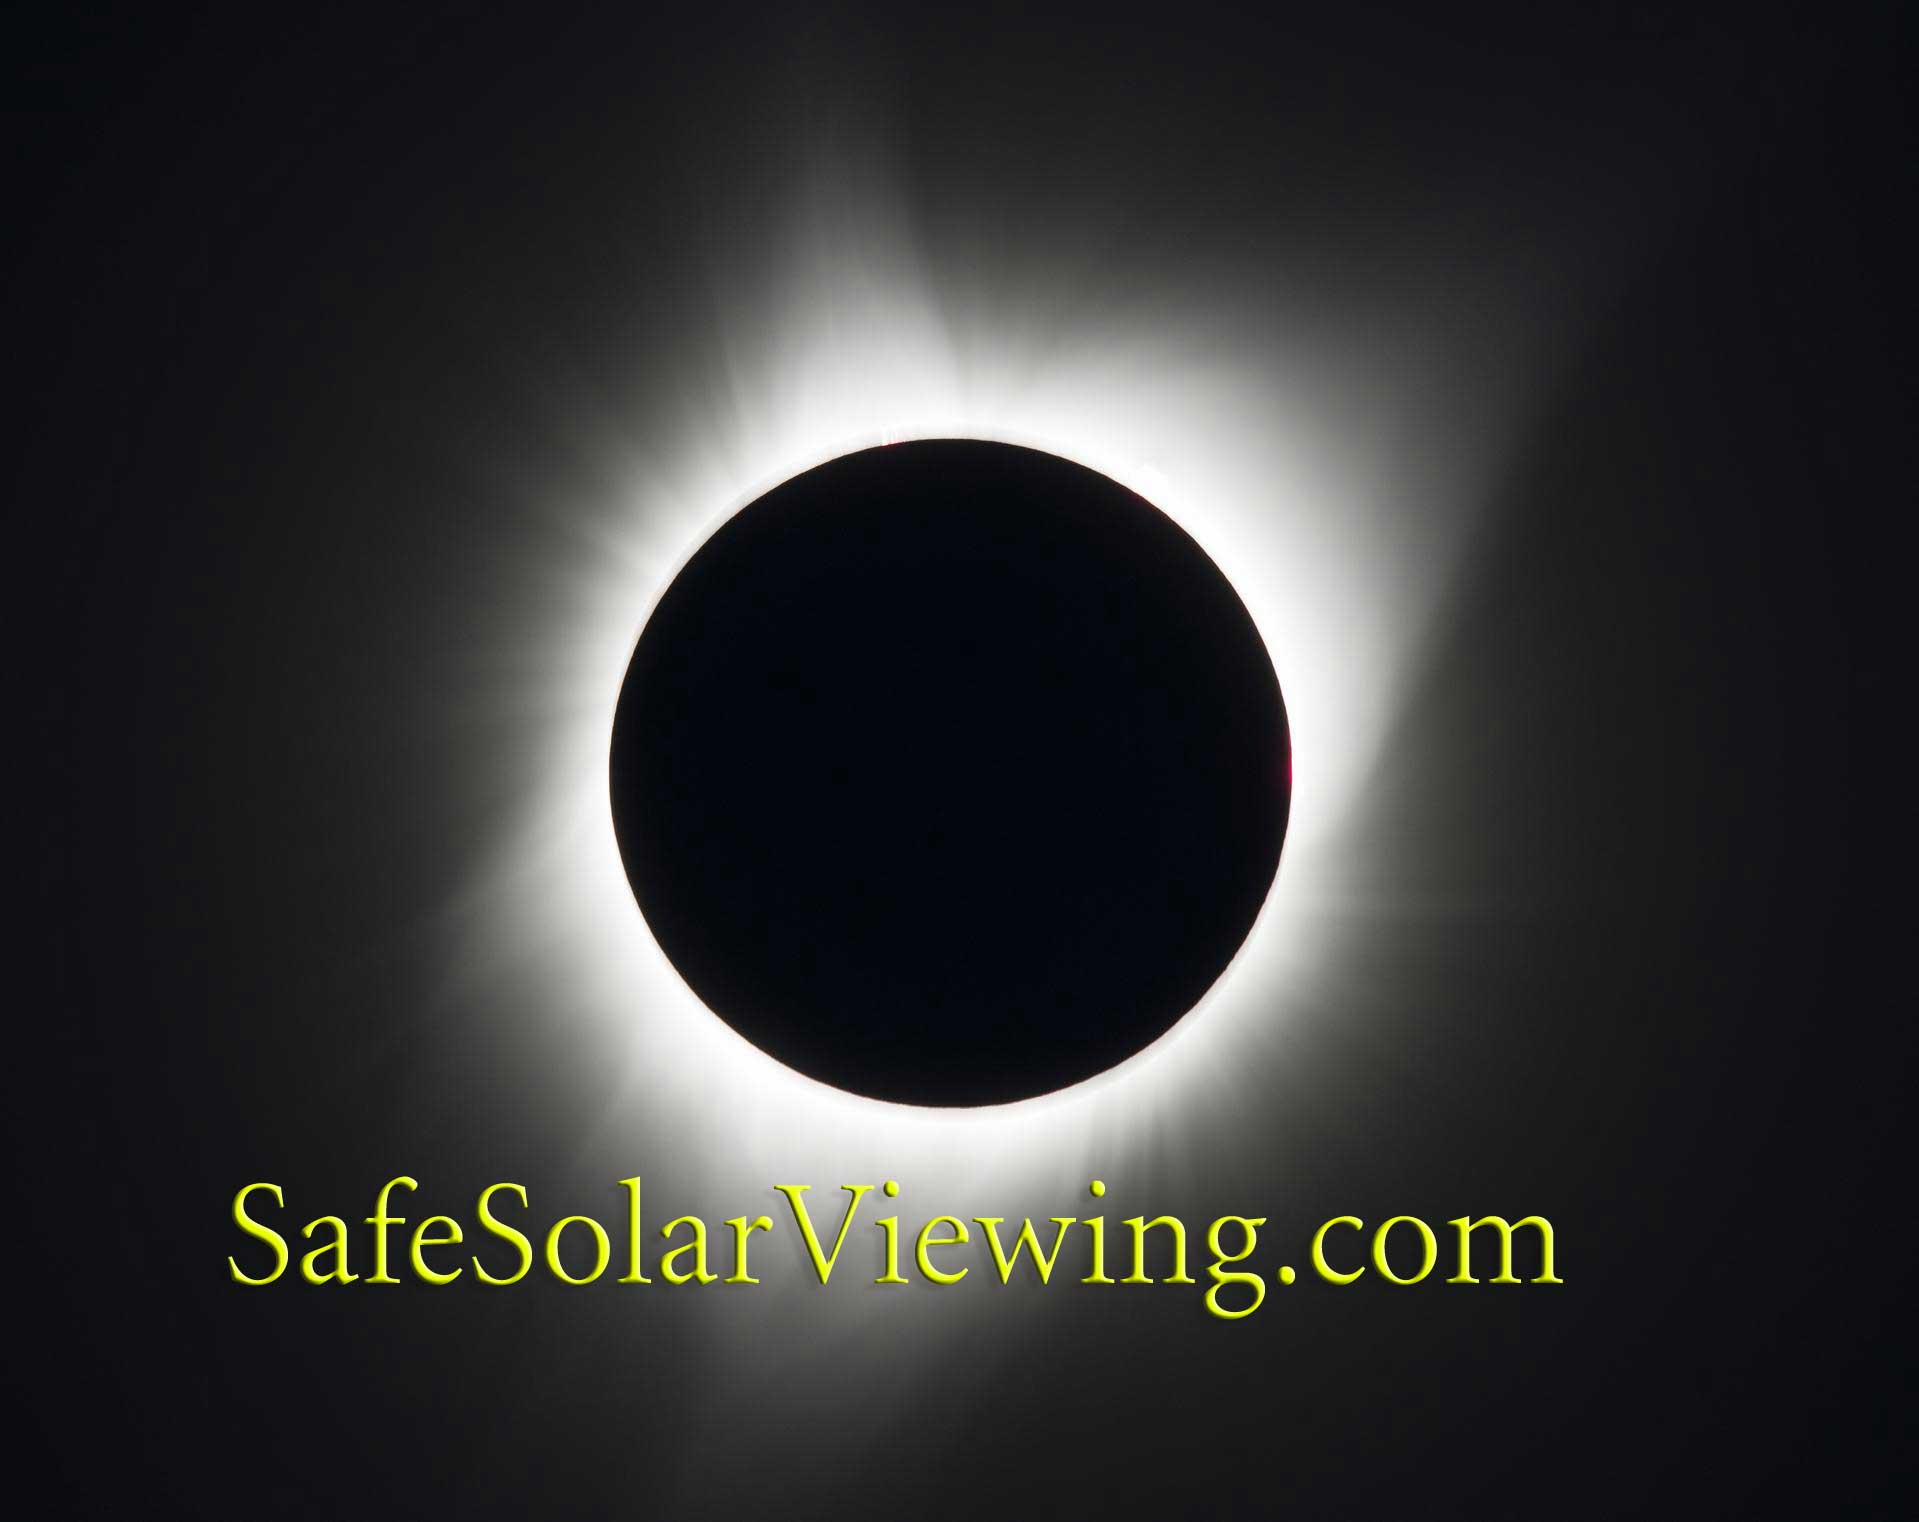 View the Sun safely